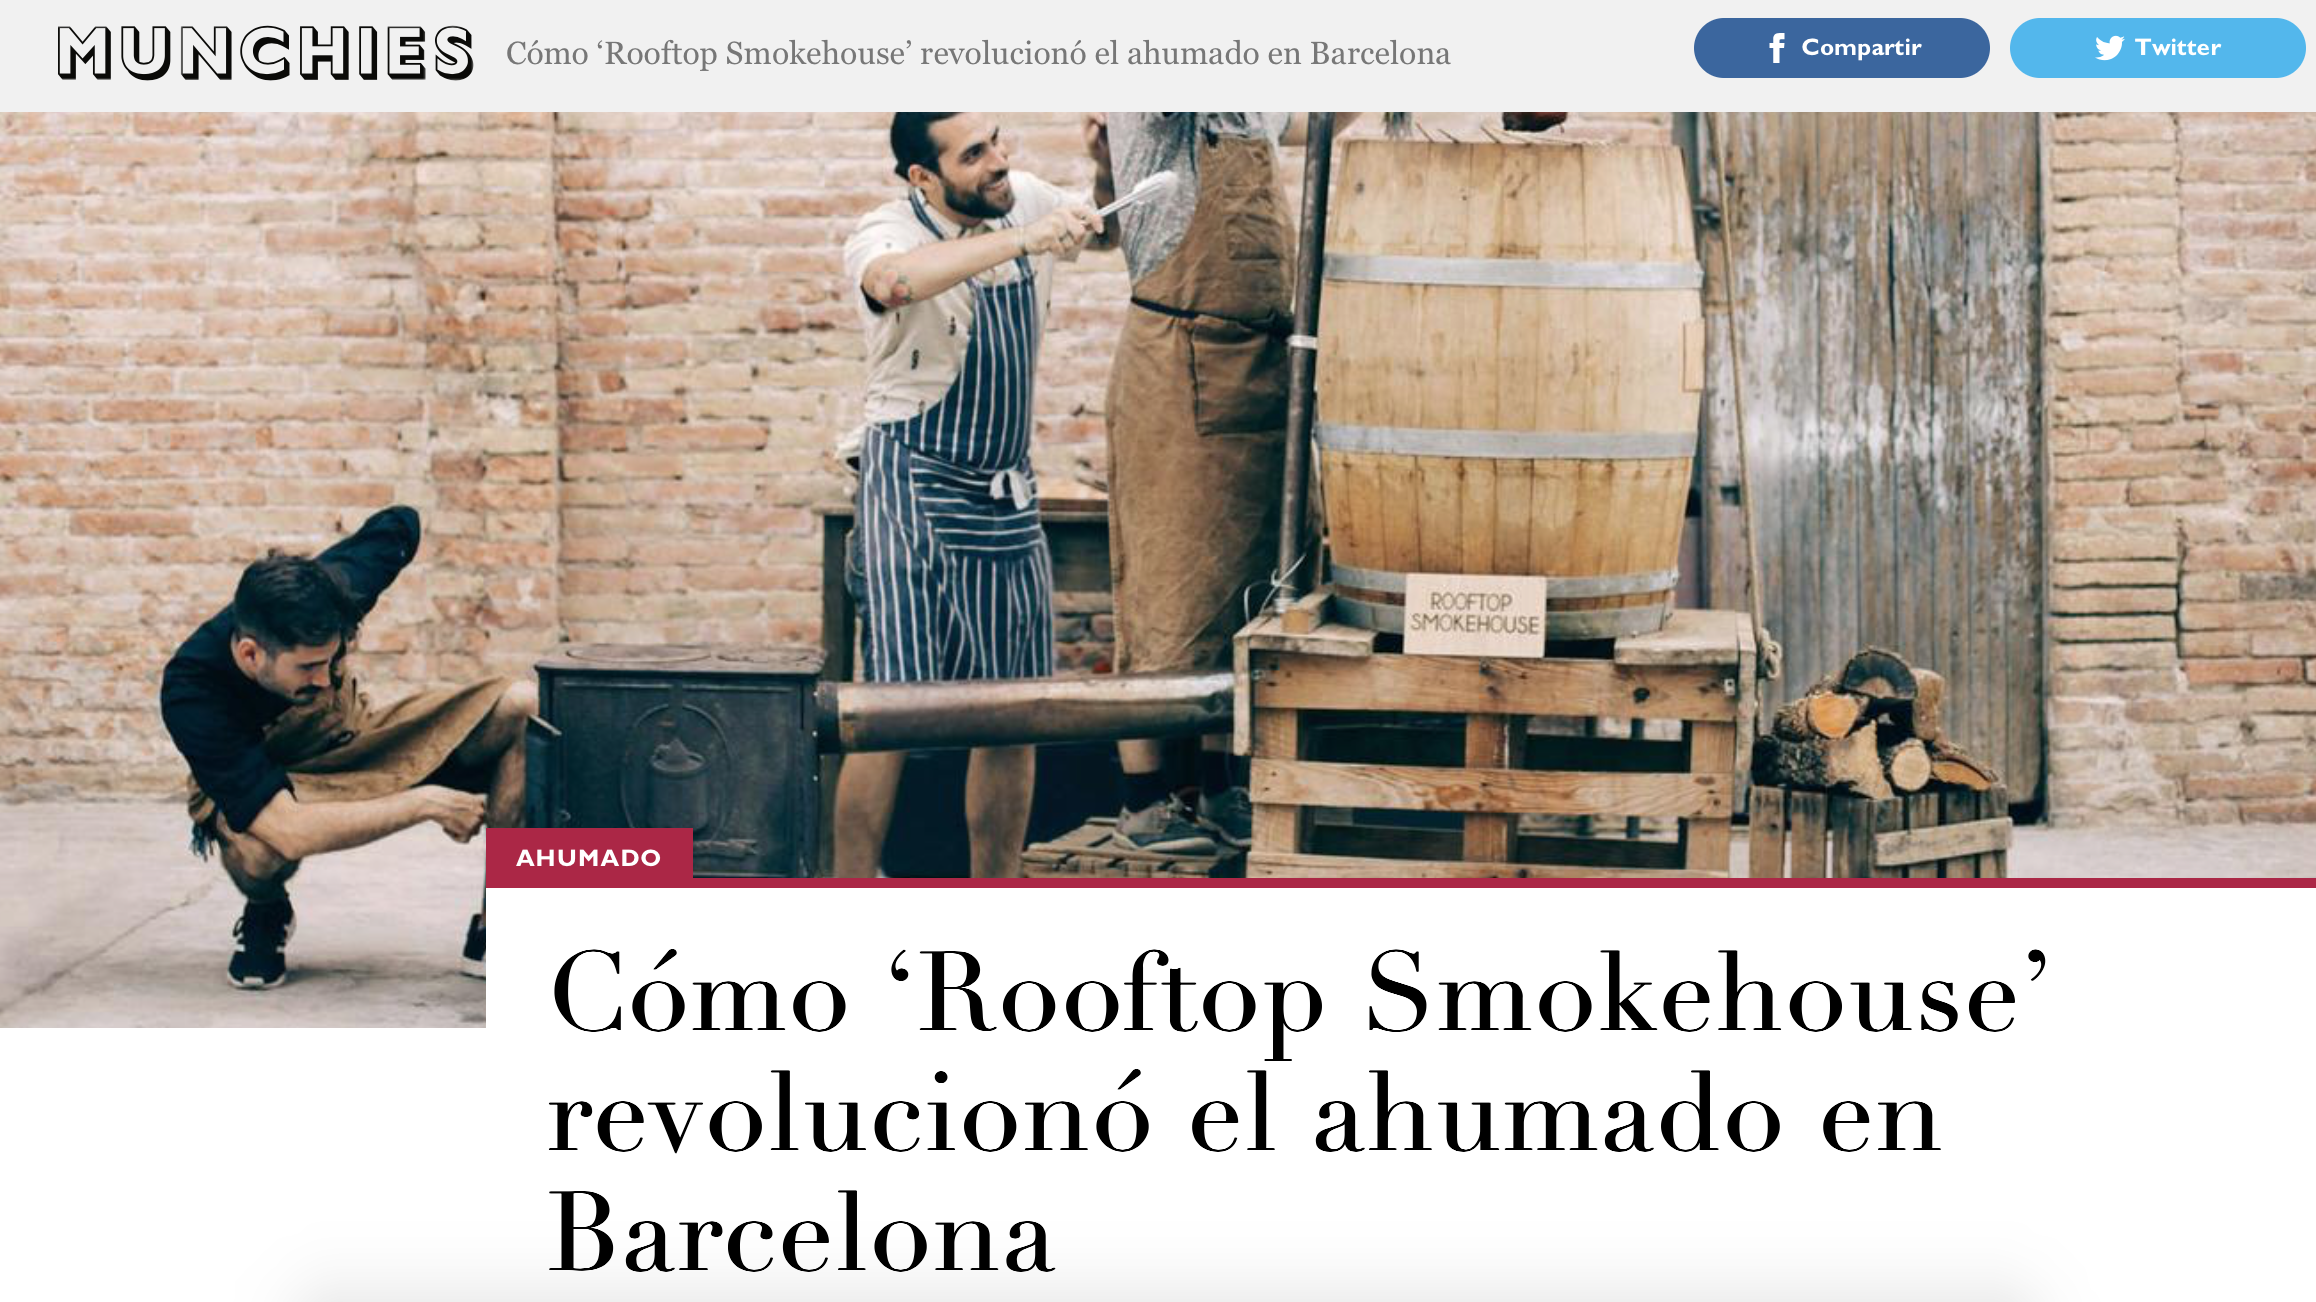 rooftop smokehouse vice munchies.png